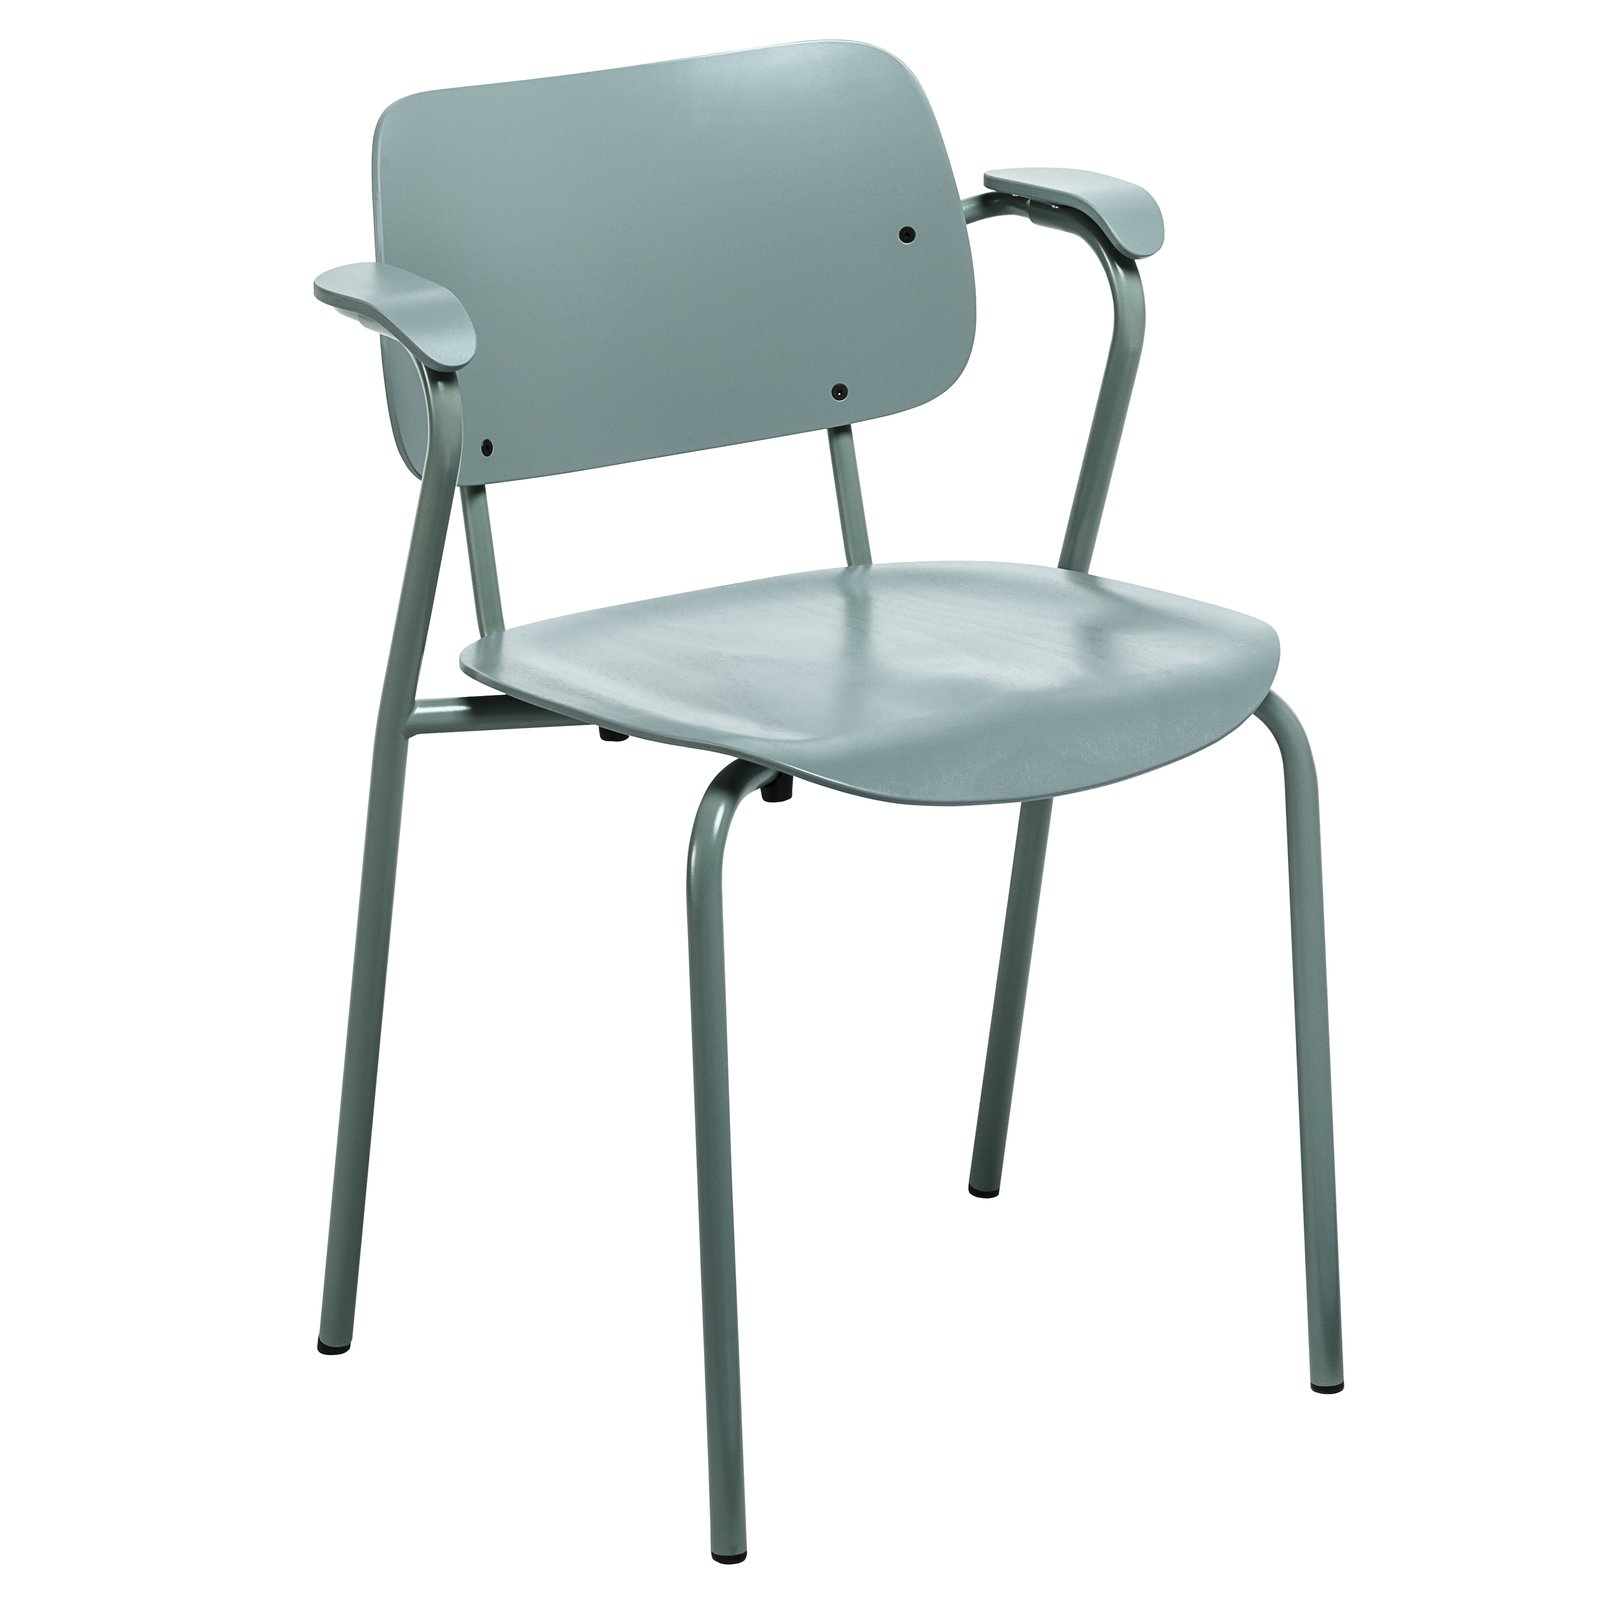 "The Lukki family of seating (Finnish for ""daddy longlegs"") includes a range of armchairs and stools in a variety of finishes including sage and stone grey, new for 2014 from Artek.  100+ Best Modern Seating Designs from Aalto Isn't the Only Finnish Modernist: Meet Ilmari Tapiovaara"